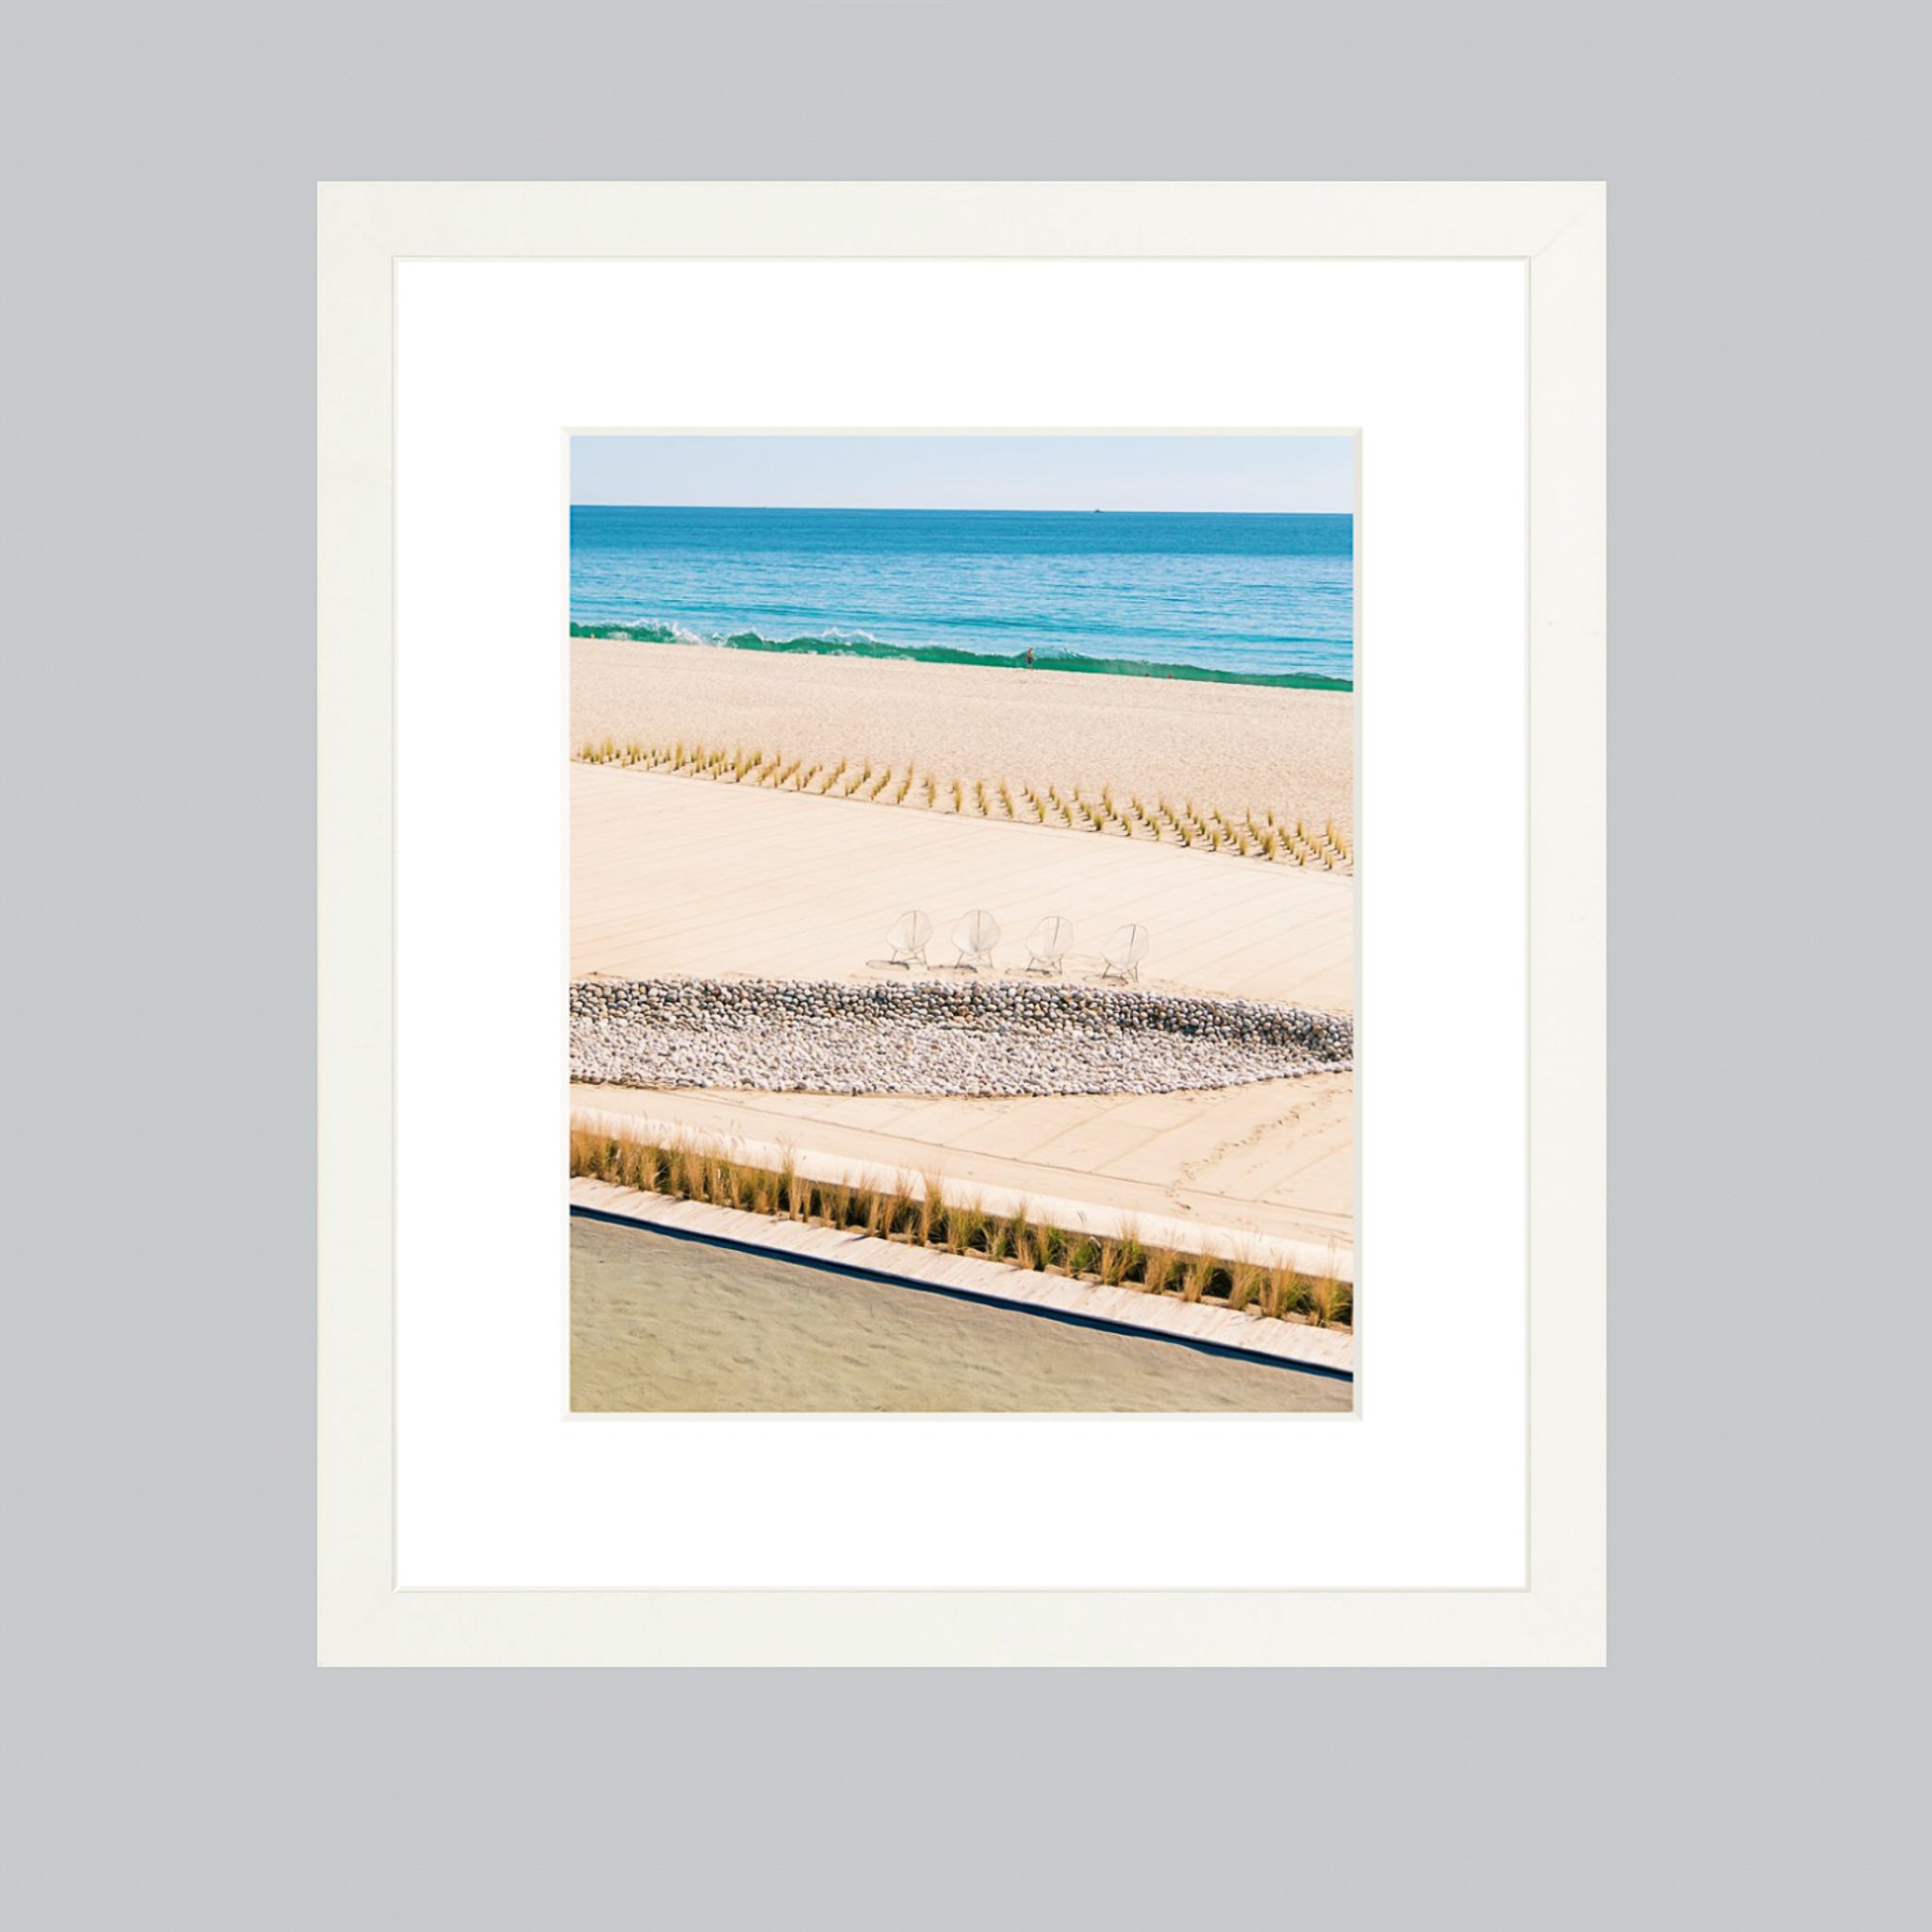 A white wood frame showcasing a fine art photo of Baja beaches.